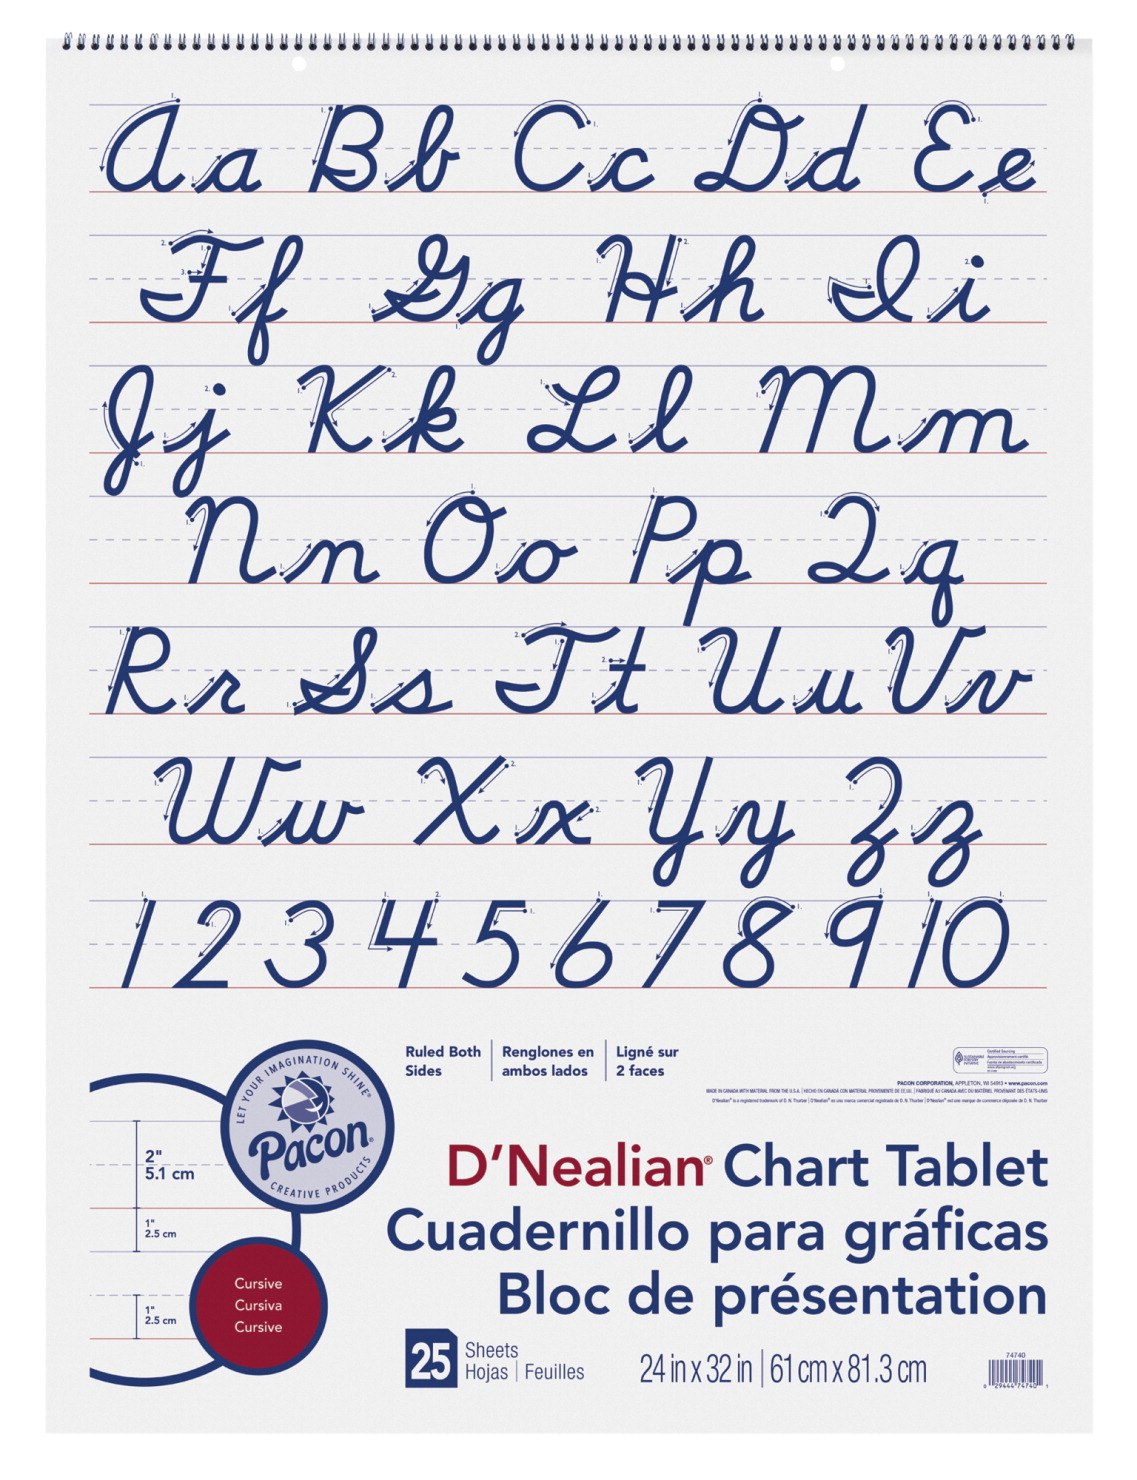 Worksheets D Nealian Cursive Worksheets uncategorized d nealian cursive worksheets klimttreeoflife practice worksheet templates collection of sharebrowse